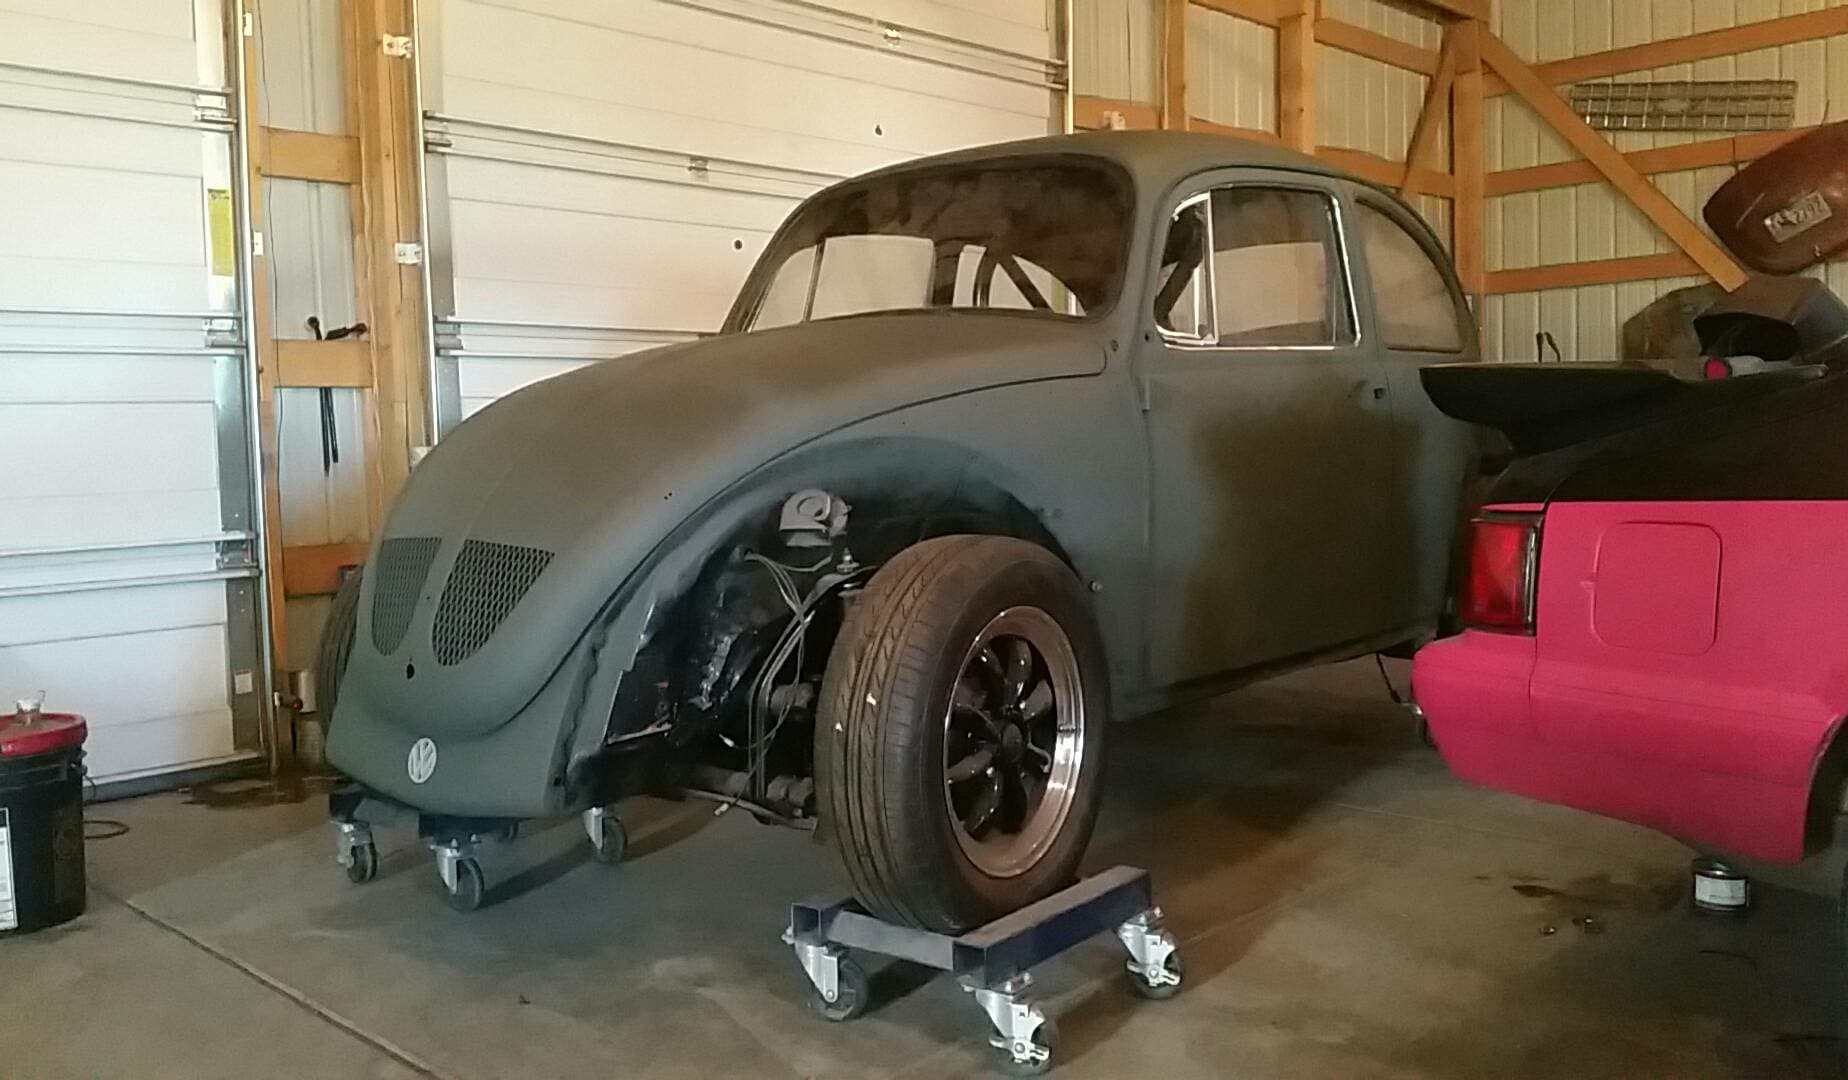 1970 Beetle With A 20 L Inline Four Engine Swap Depot 1998 Volkswagen Door Wiring Harness Ford Fuel Pump Will Fed The And Volvo Radiator Cools It Mike Rebuilt Front Rear Suspension Kyb Shocks Installed Disc